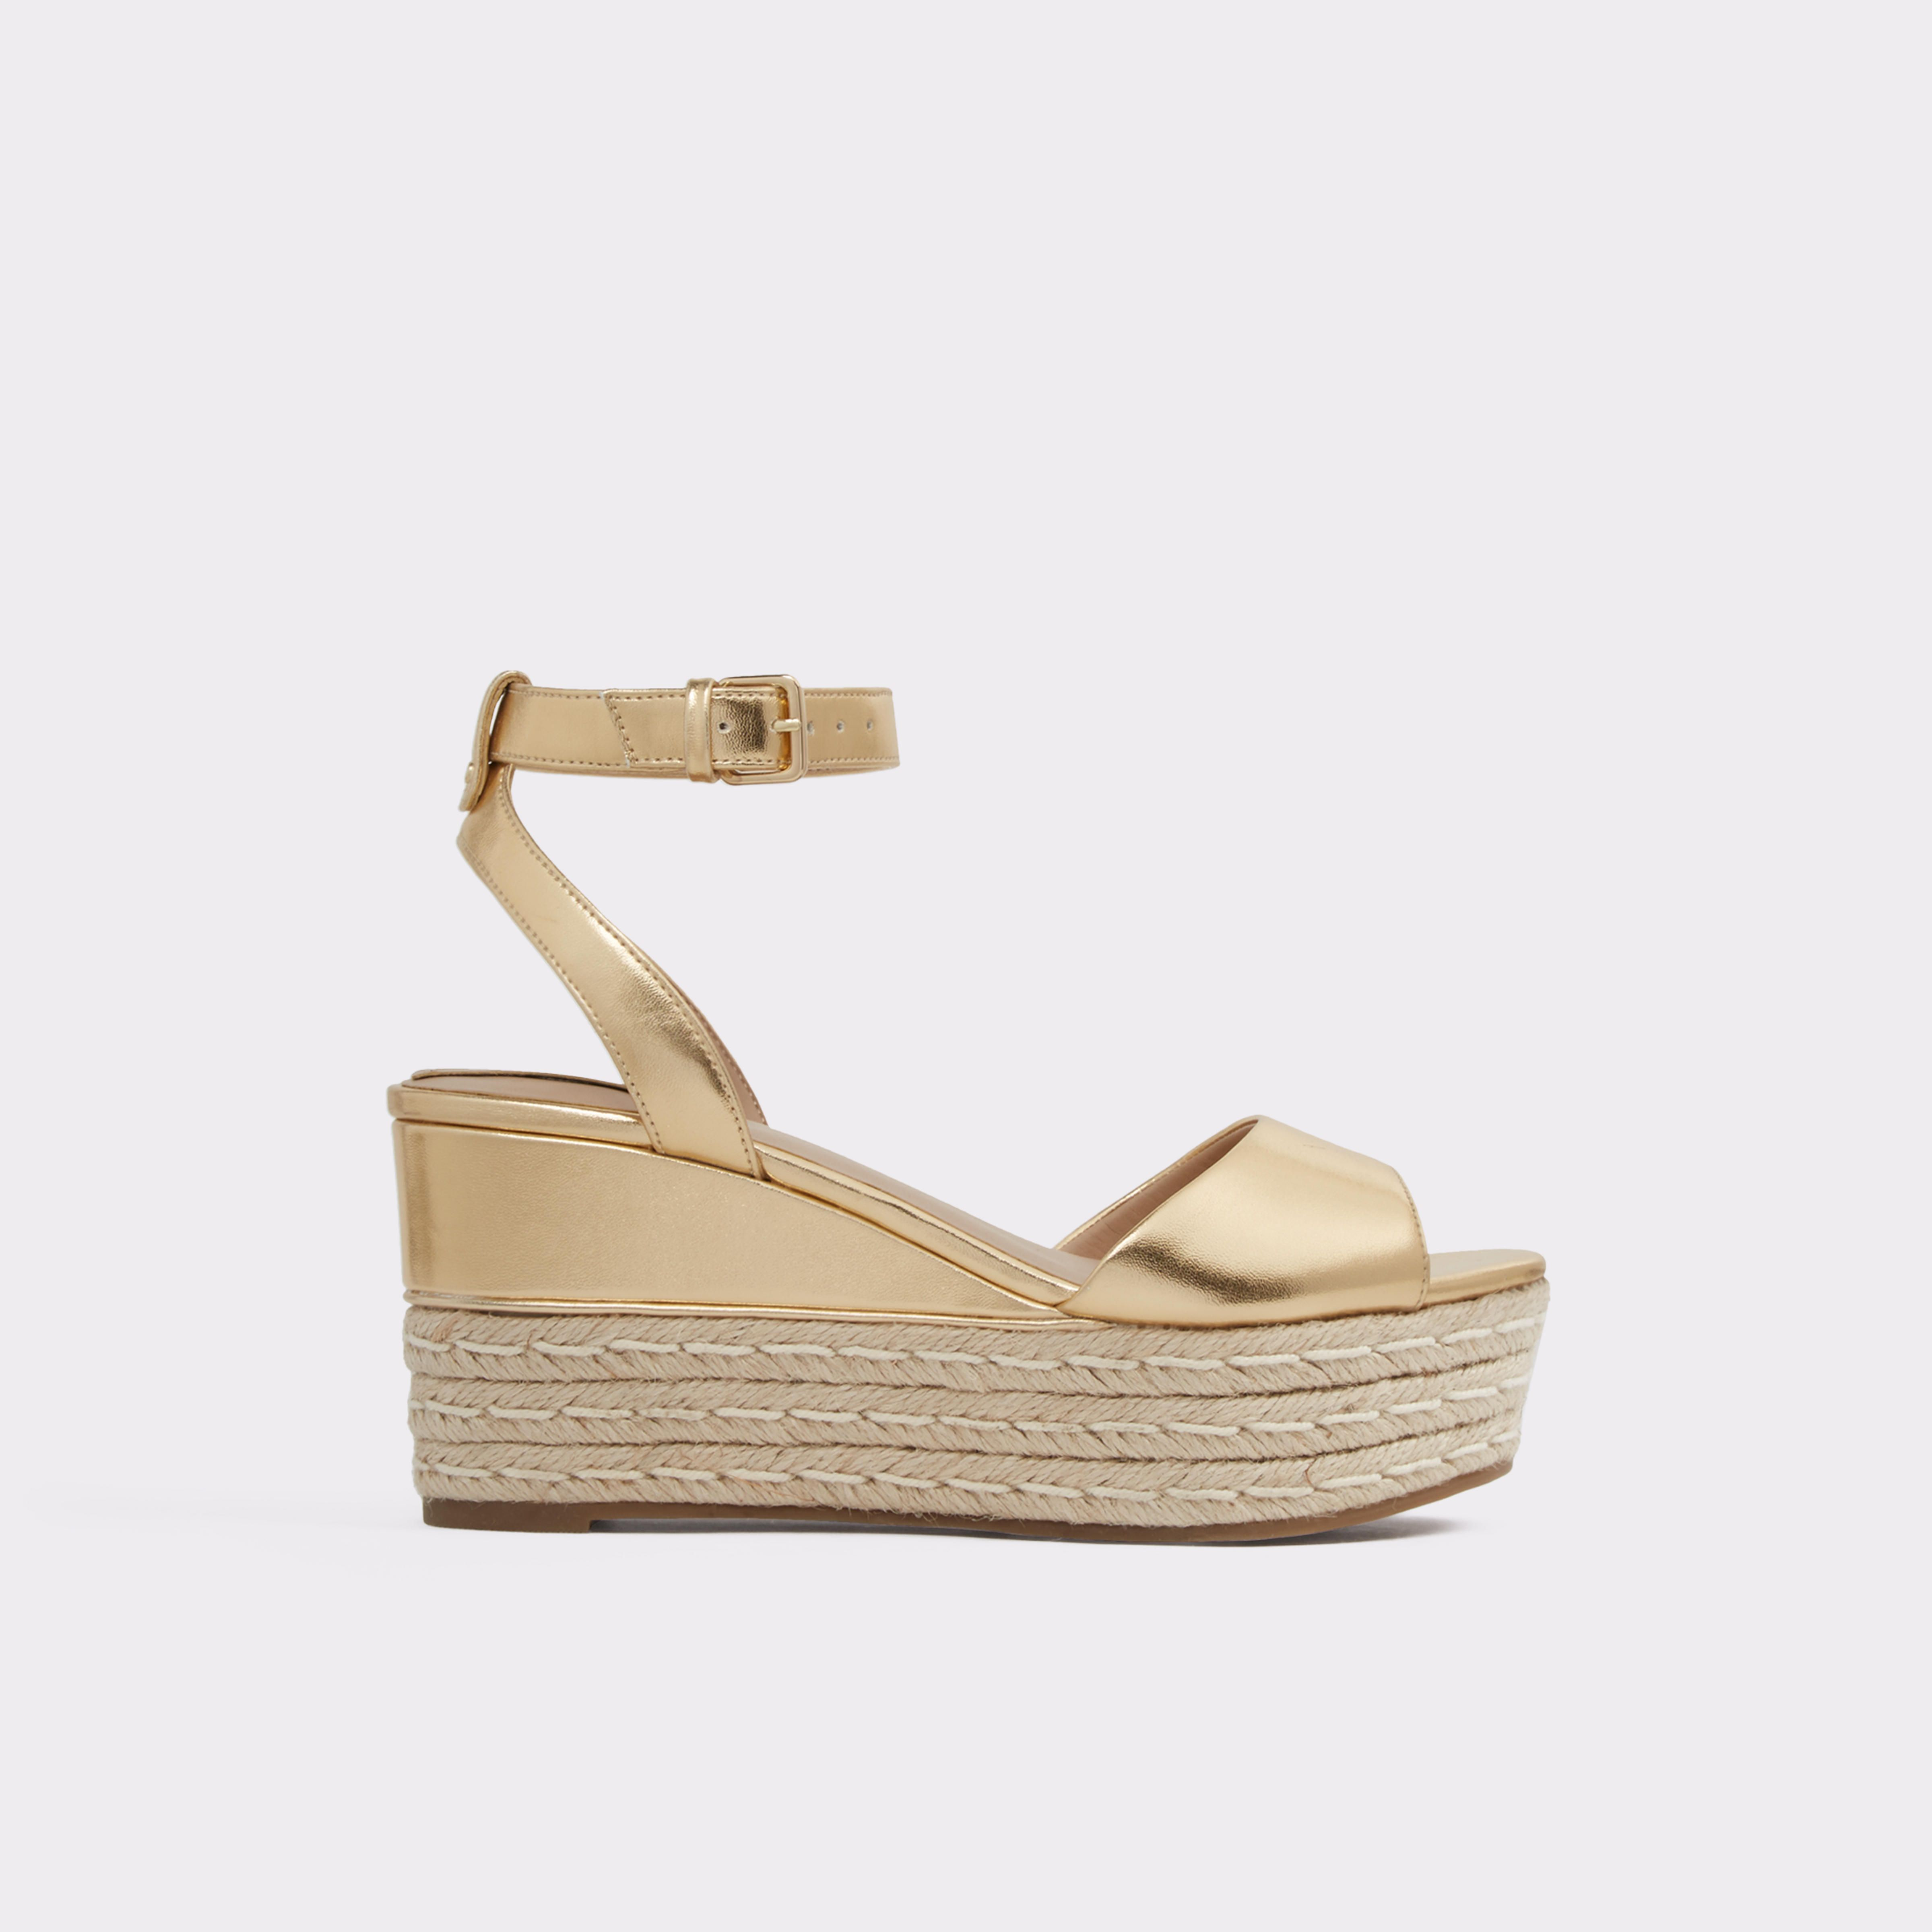 01861a4e23d11 Miraclya Gold Women s Wedges